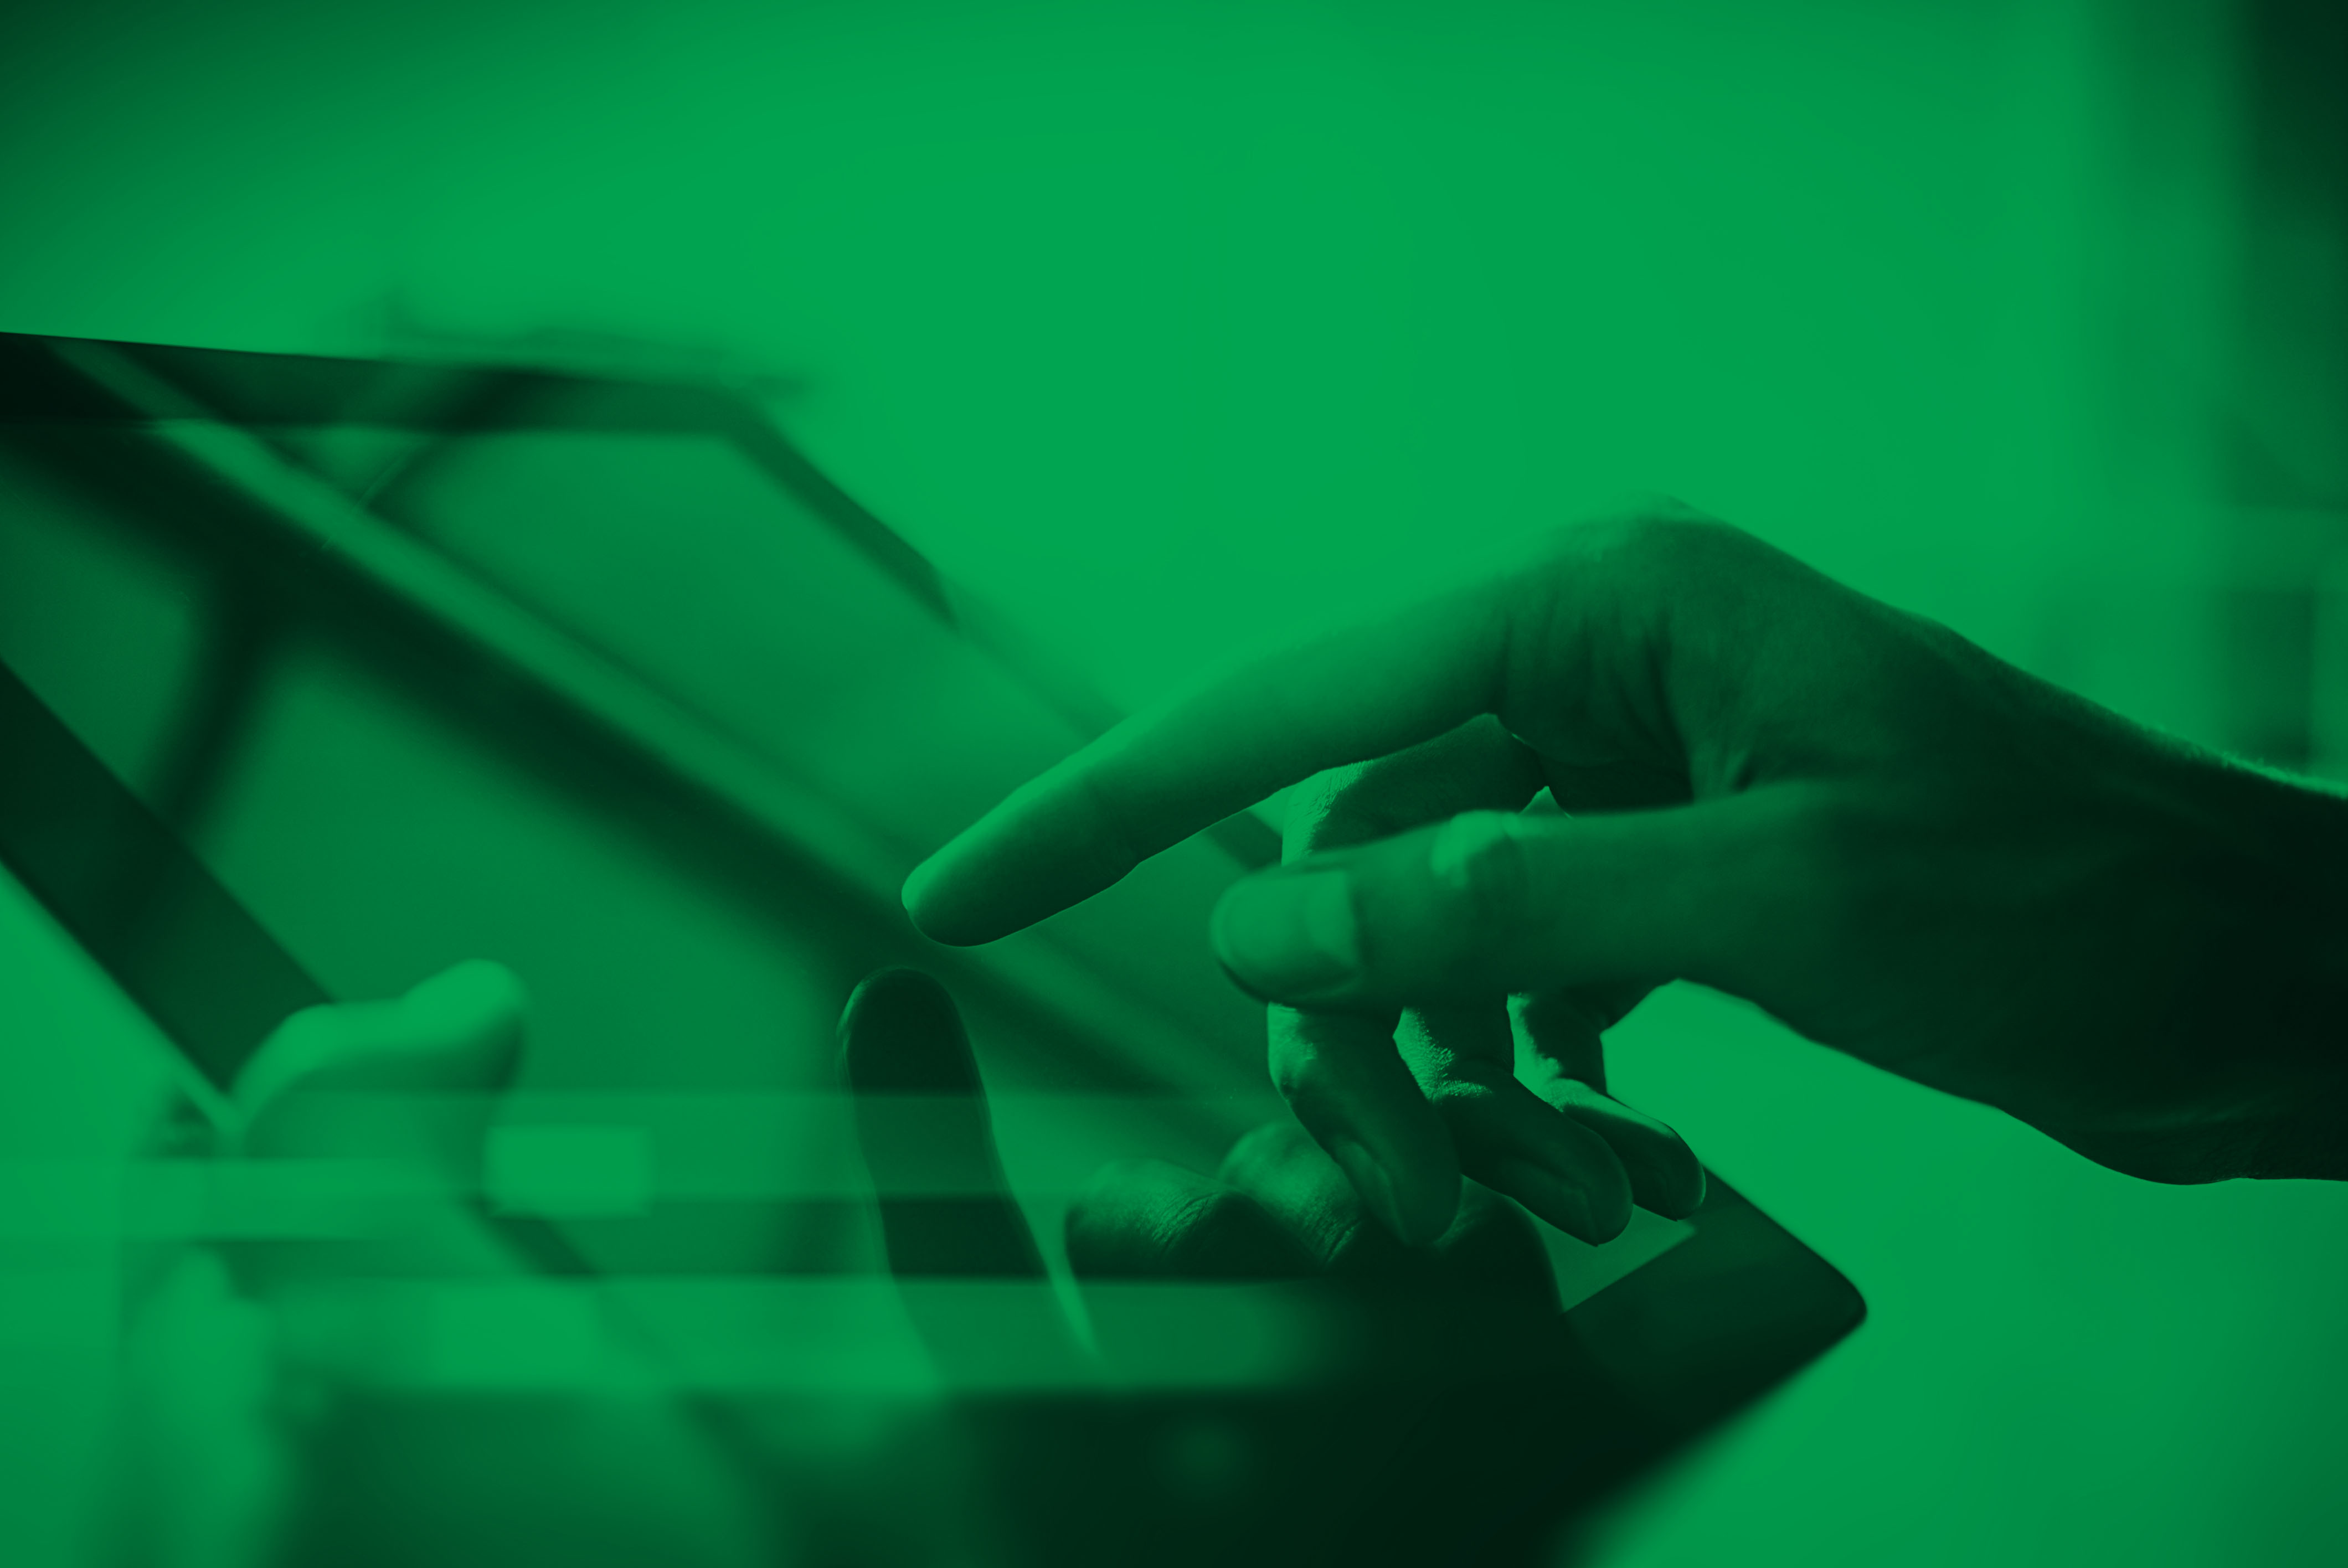 Abstract_Holding Tablet_green.jpg